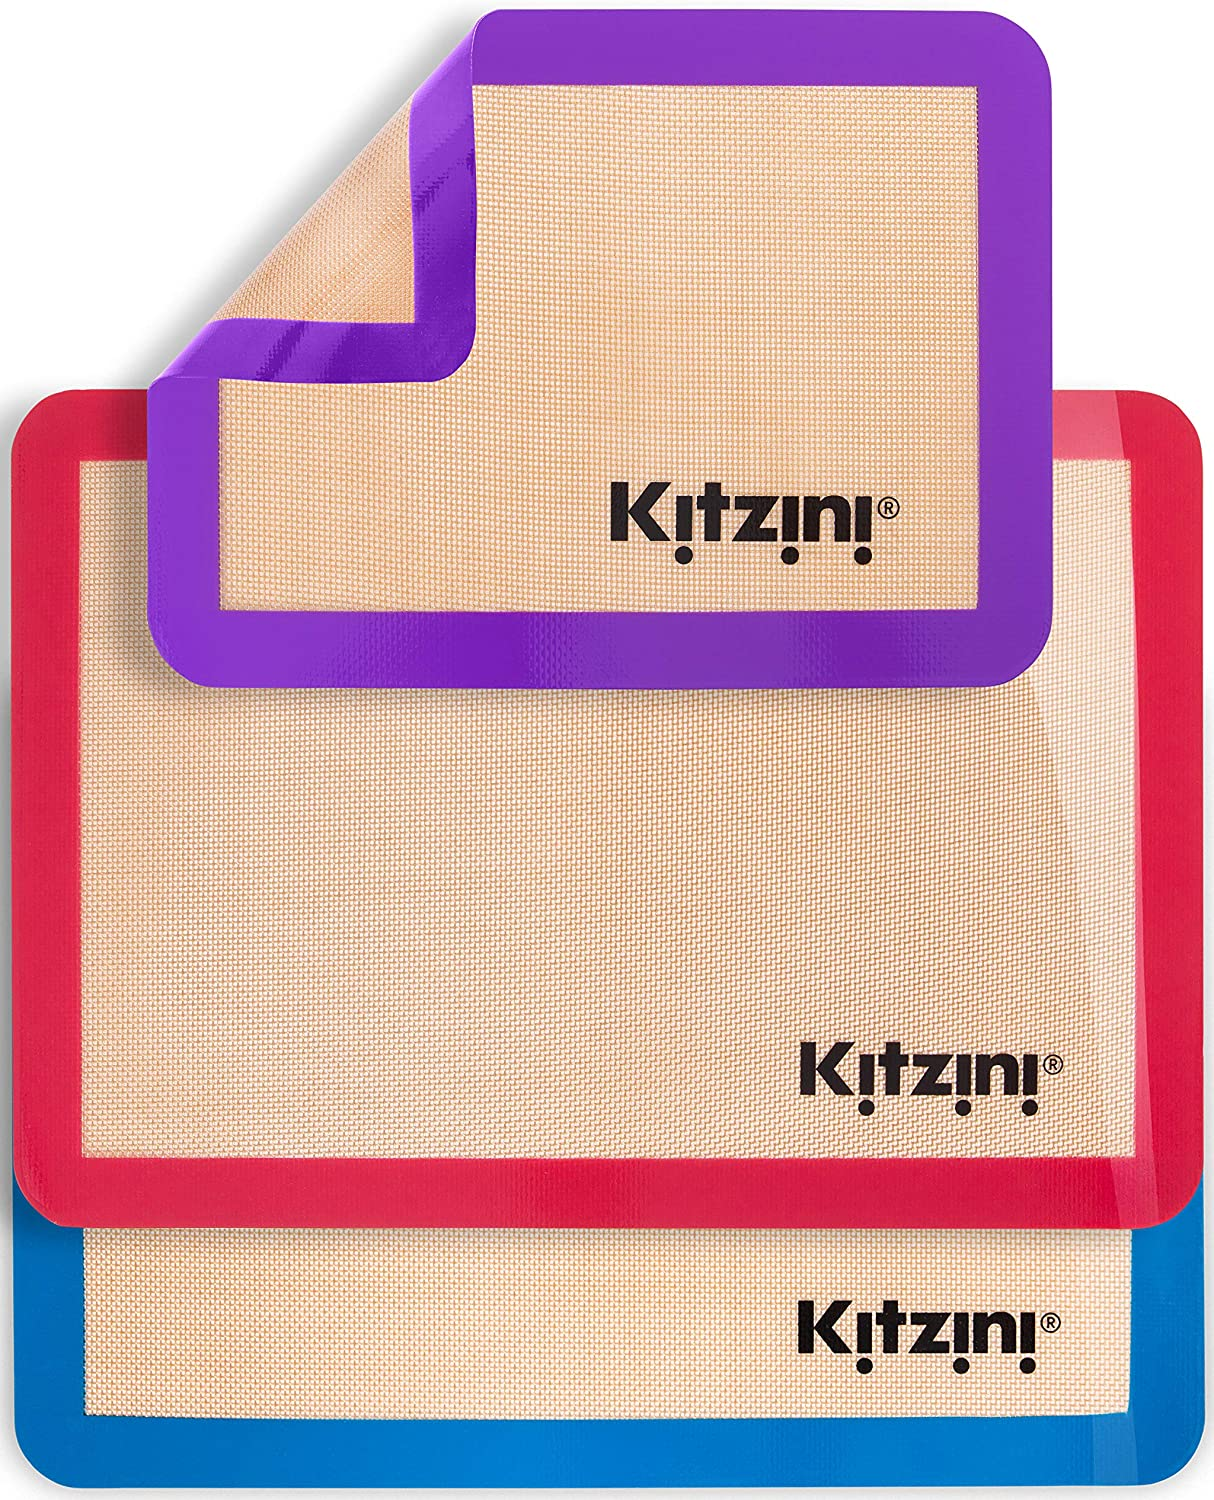 Kitzini Silicone SEAL limited product Baking Mat 2021new shipping free shipping Set. Bak Non-Stick Mats for